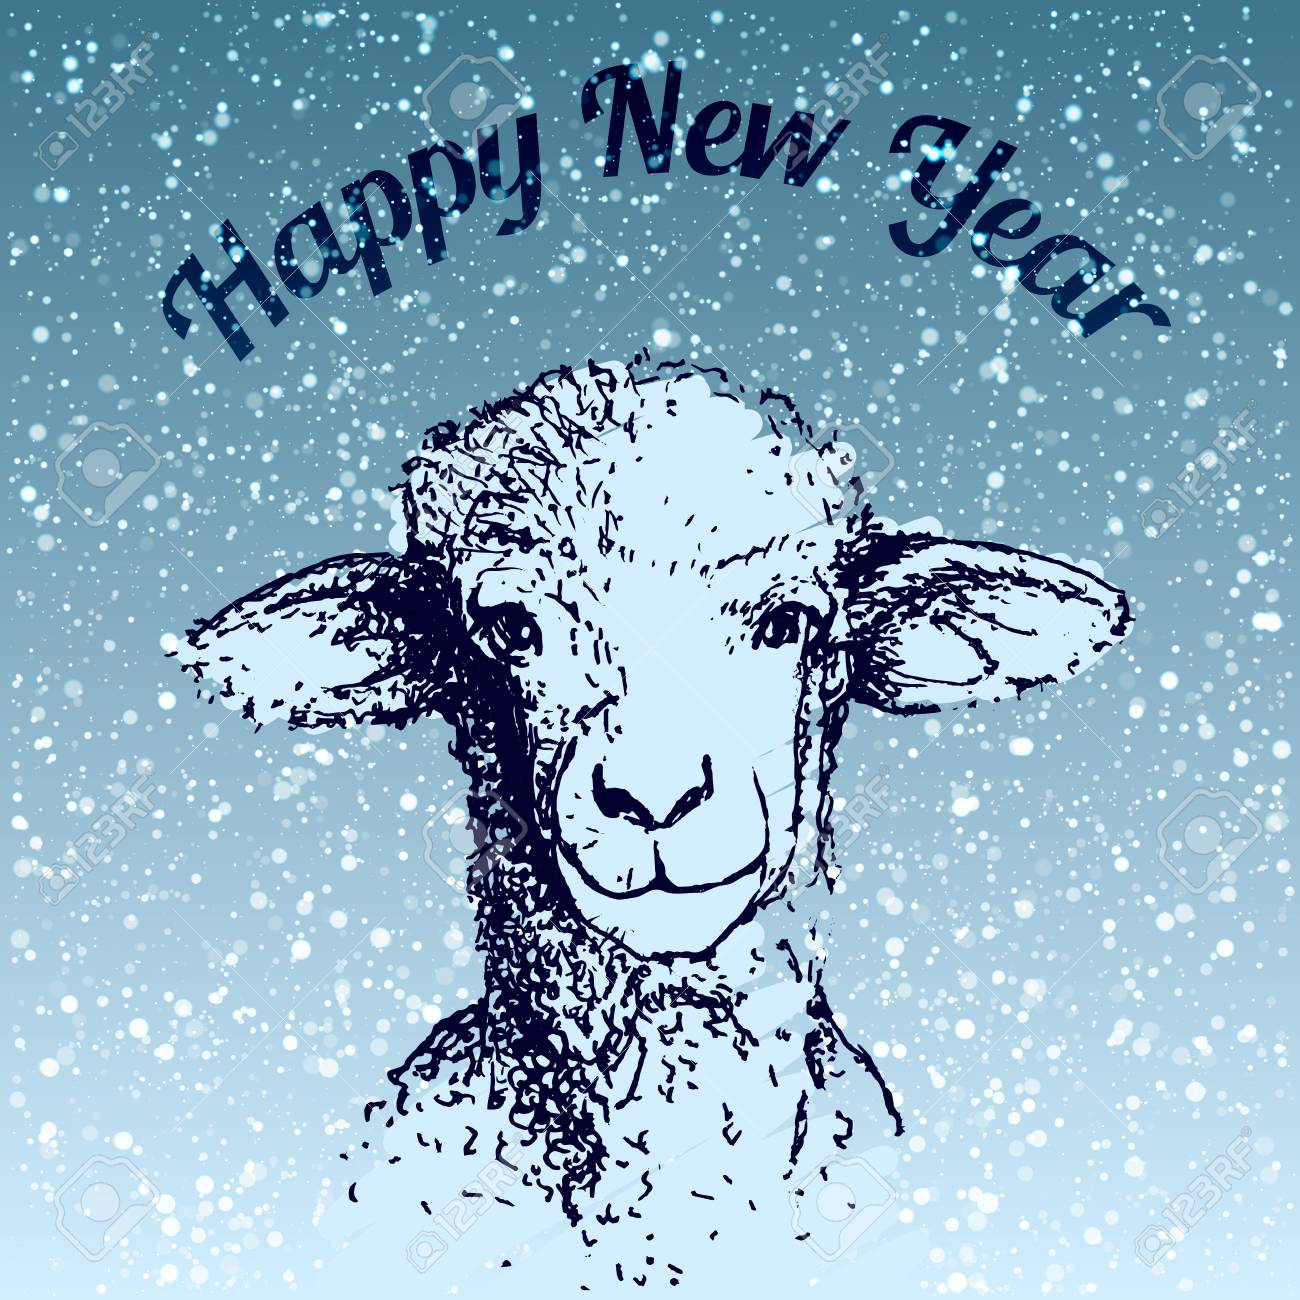 happy new year sheep illustrarion with snowfall and blue background stock photo 91328355